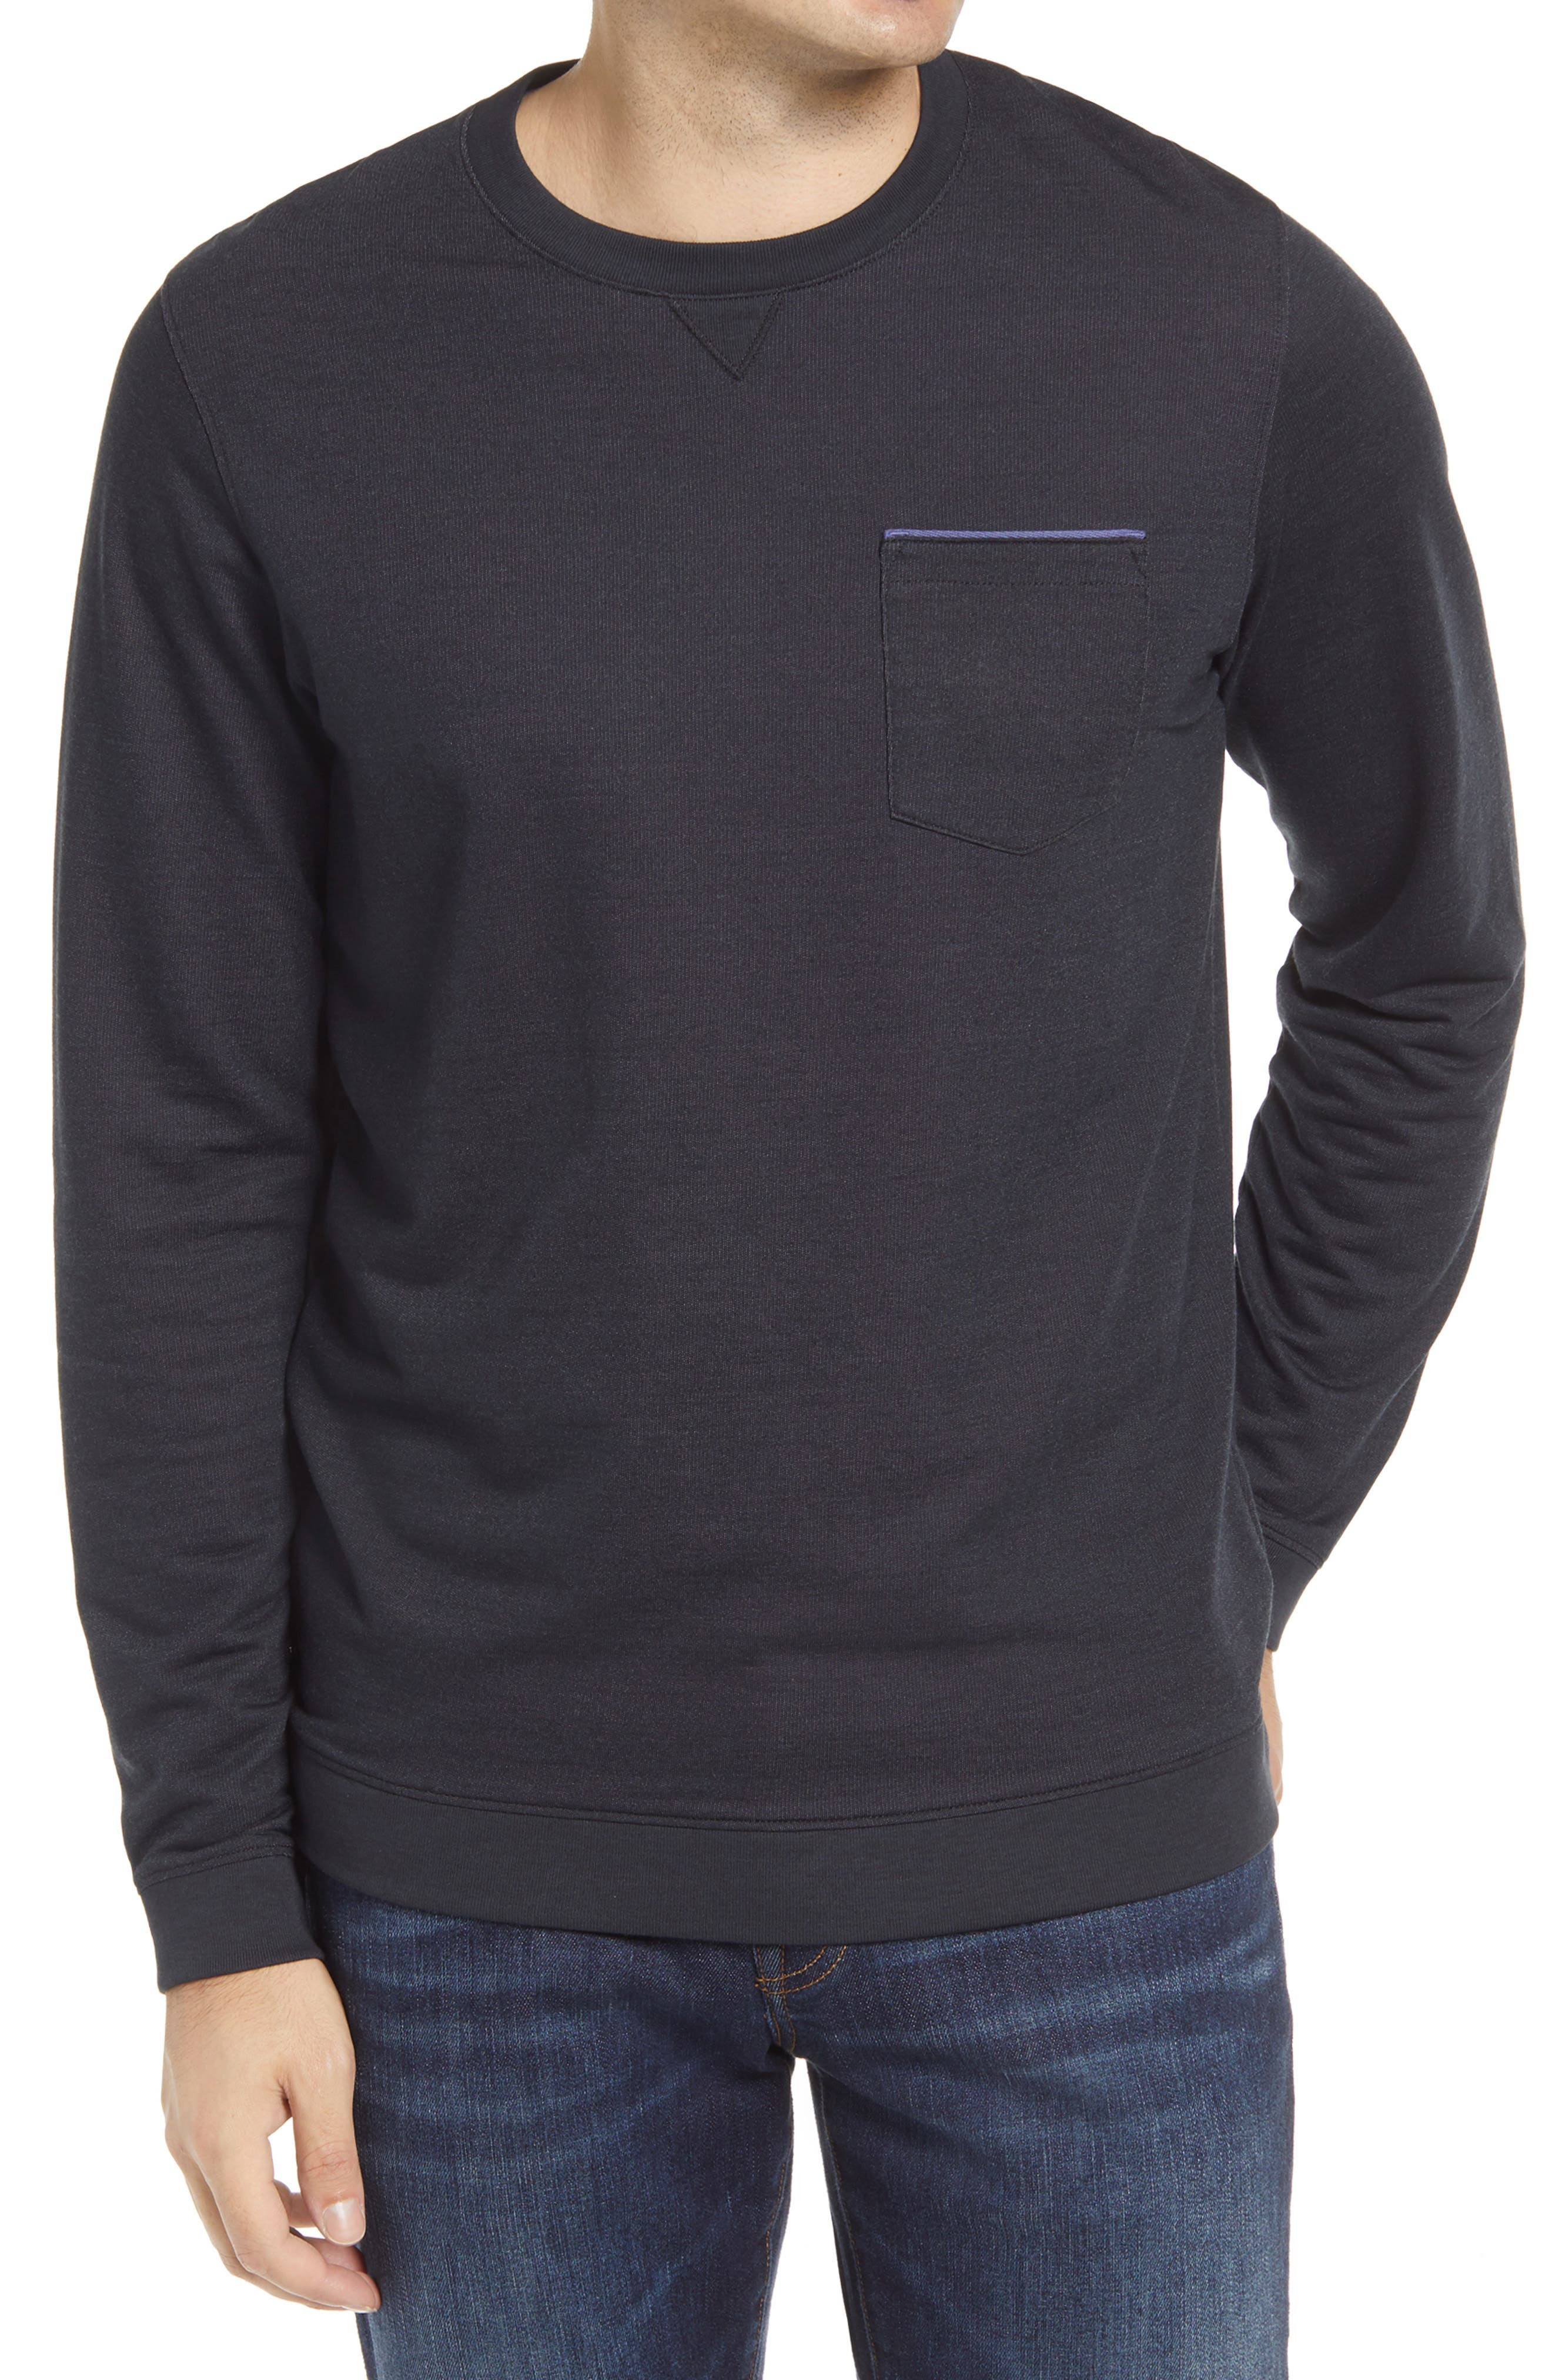 A slim stripe of contrasting color dashes across the chest pocket of a peppered long-sleeve T-shirt. Style Name: Travismathew Lanegan Long Sleeve T-Shirt. Style Number: 5605390. Available in stores.